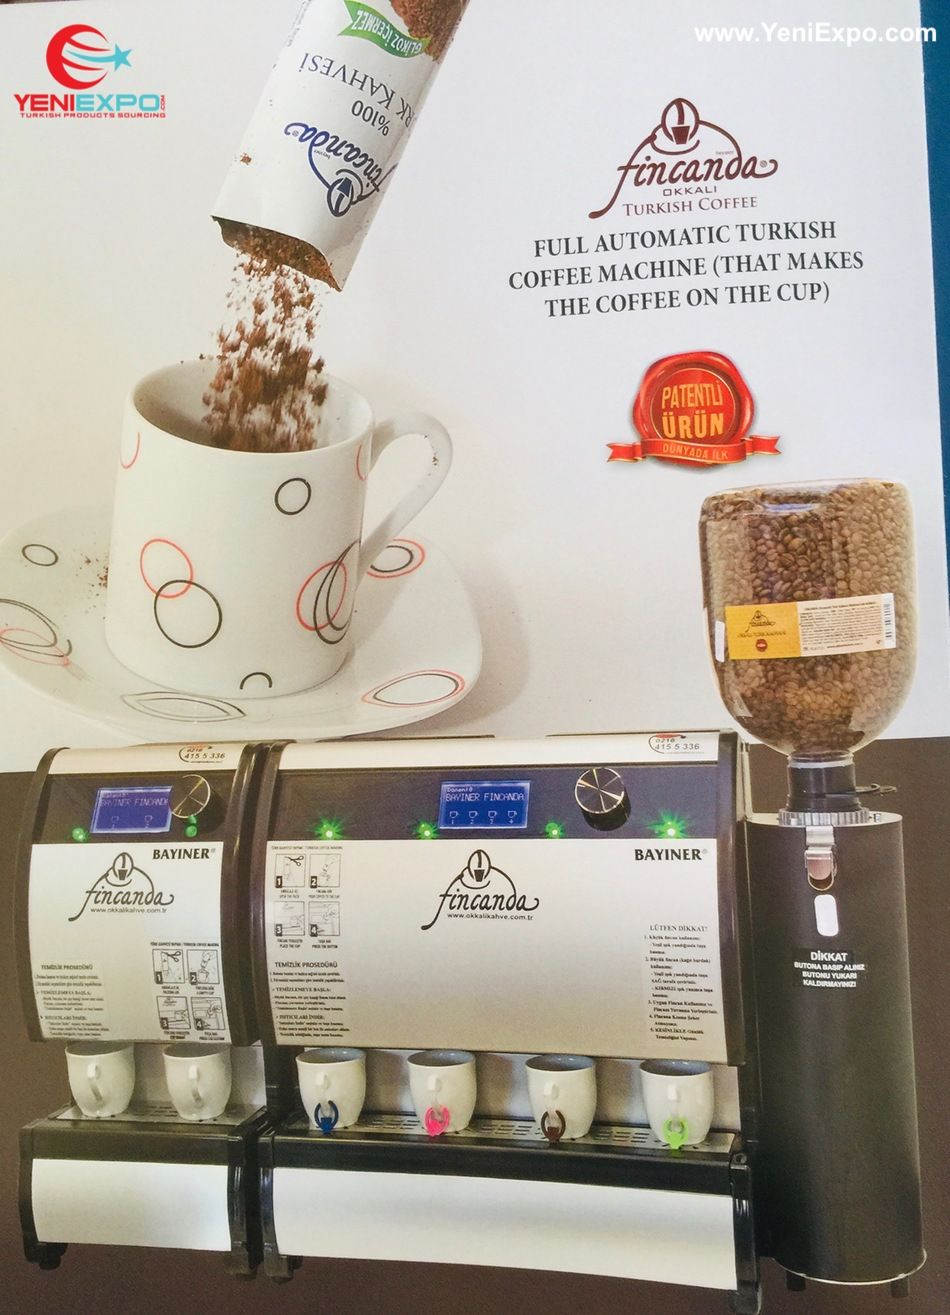 Advanced Turkish Coffee Making Machines Available For Export Made In Turkey Contact Bayiner آلات صنع القهوة التر Making Machine Turkish Coffee Turkish